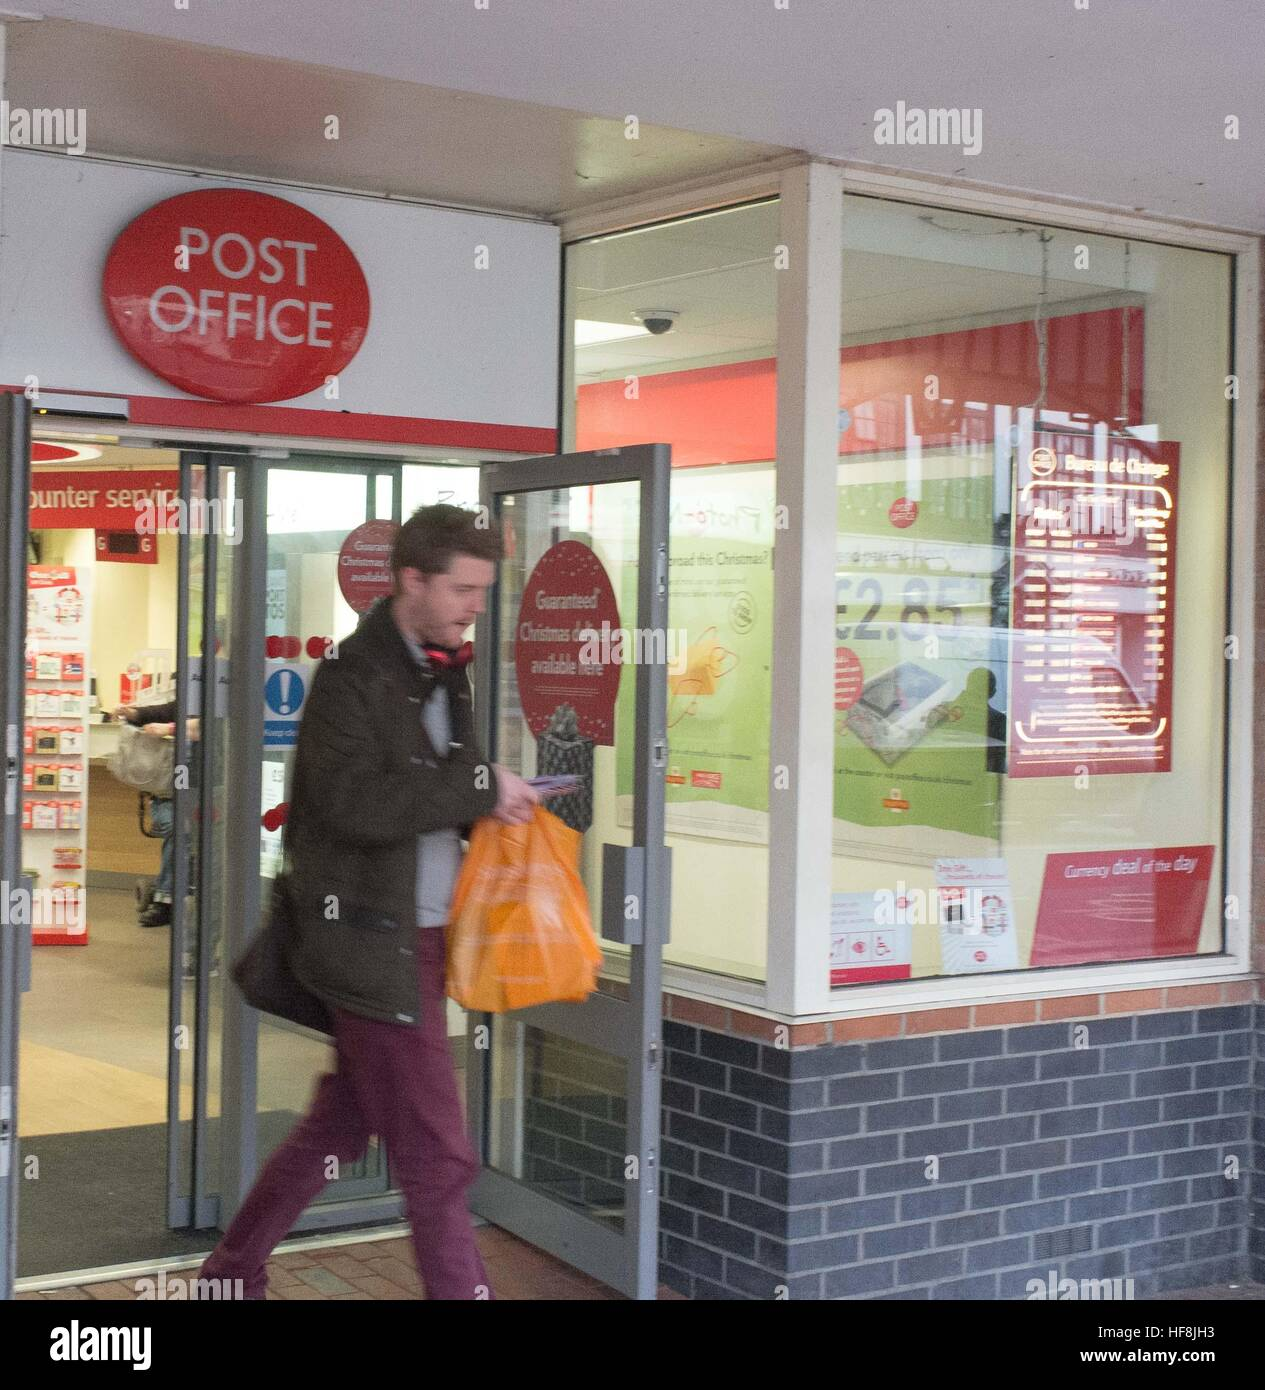 19th December 2016: Reading, UK - Reading Post Office open despite a strike by CWU workers at Crown Post Offices. - Stock Image